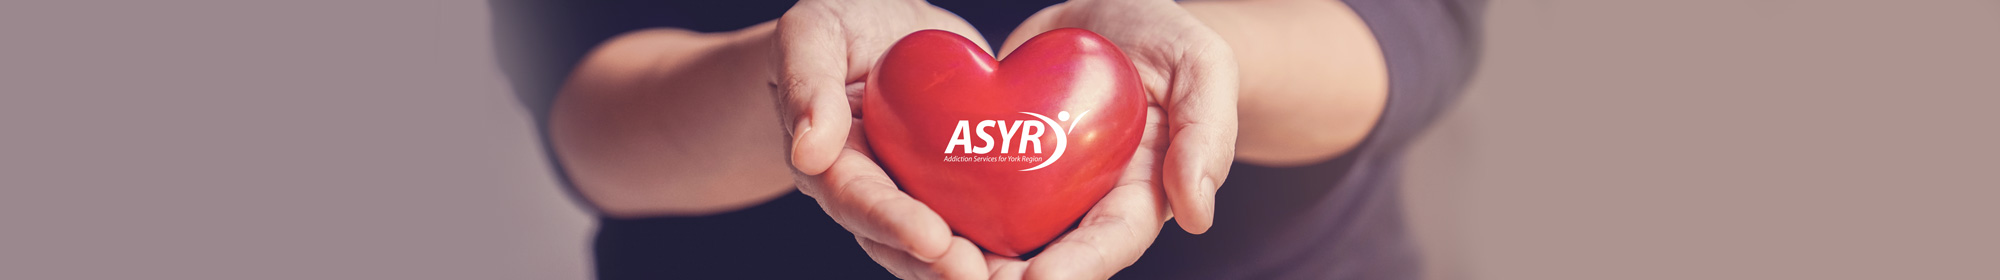 woman cradling a red heart in her hands with ASYR logo imprinted on it